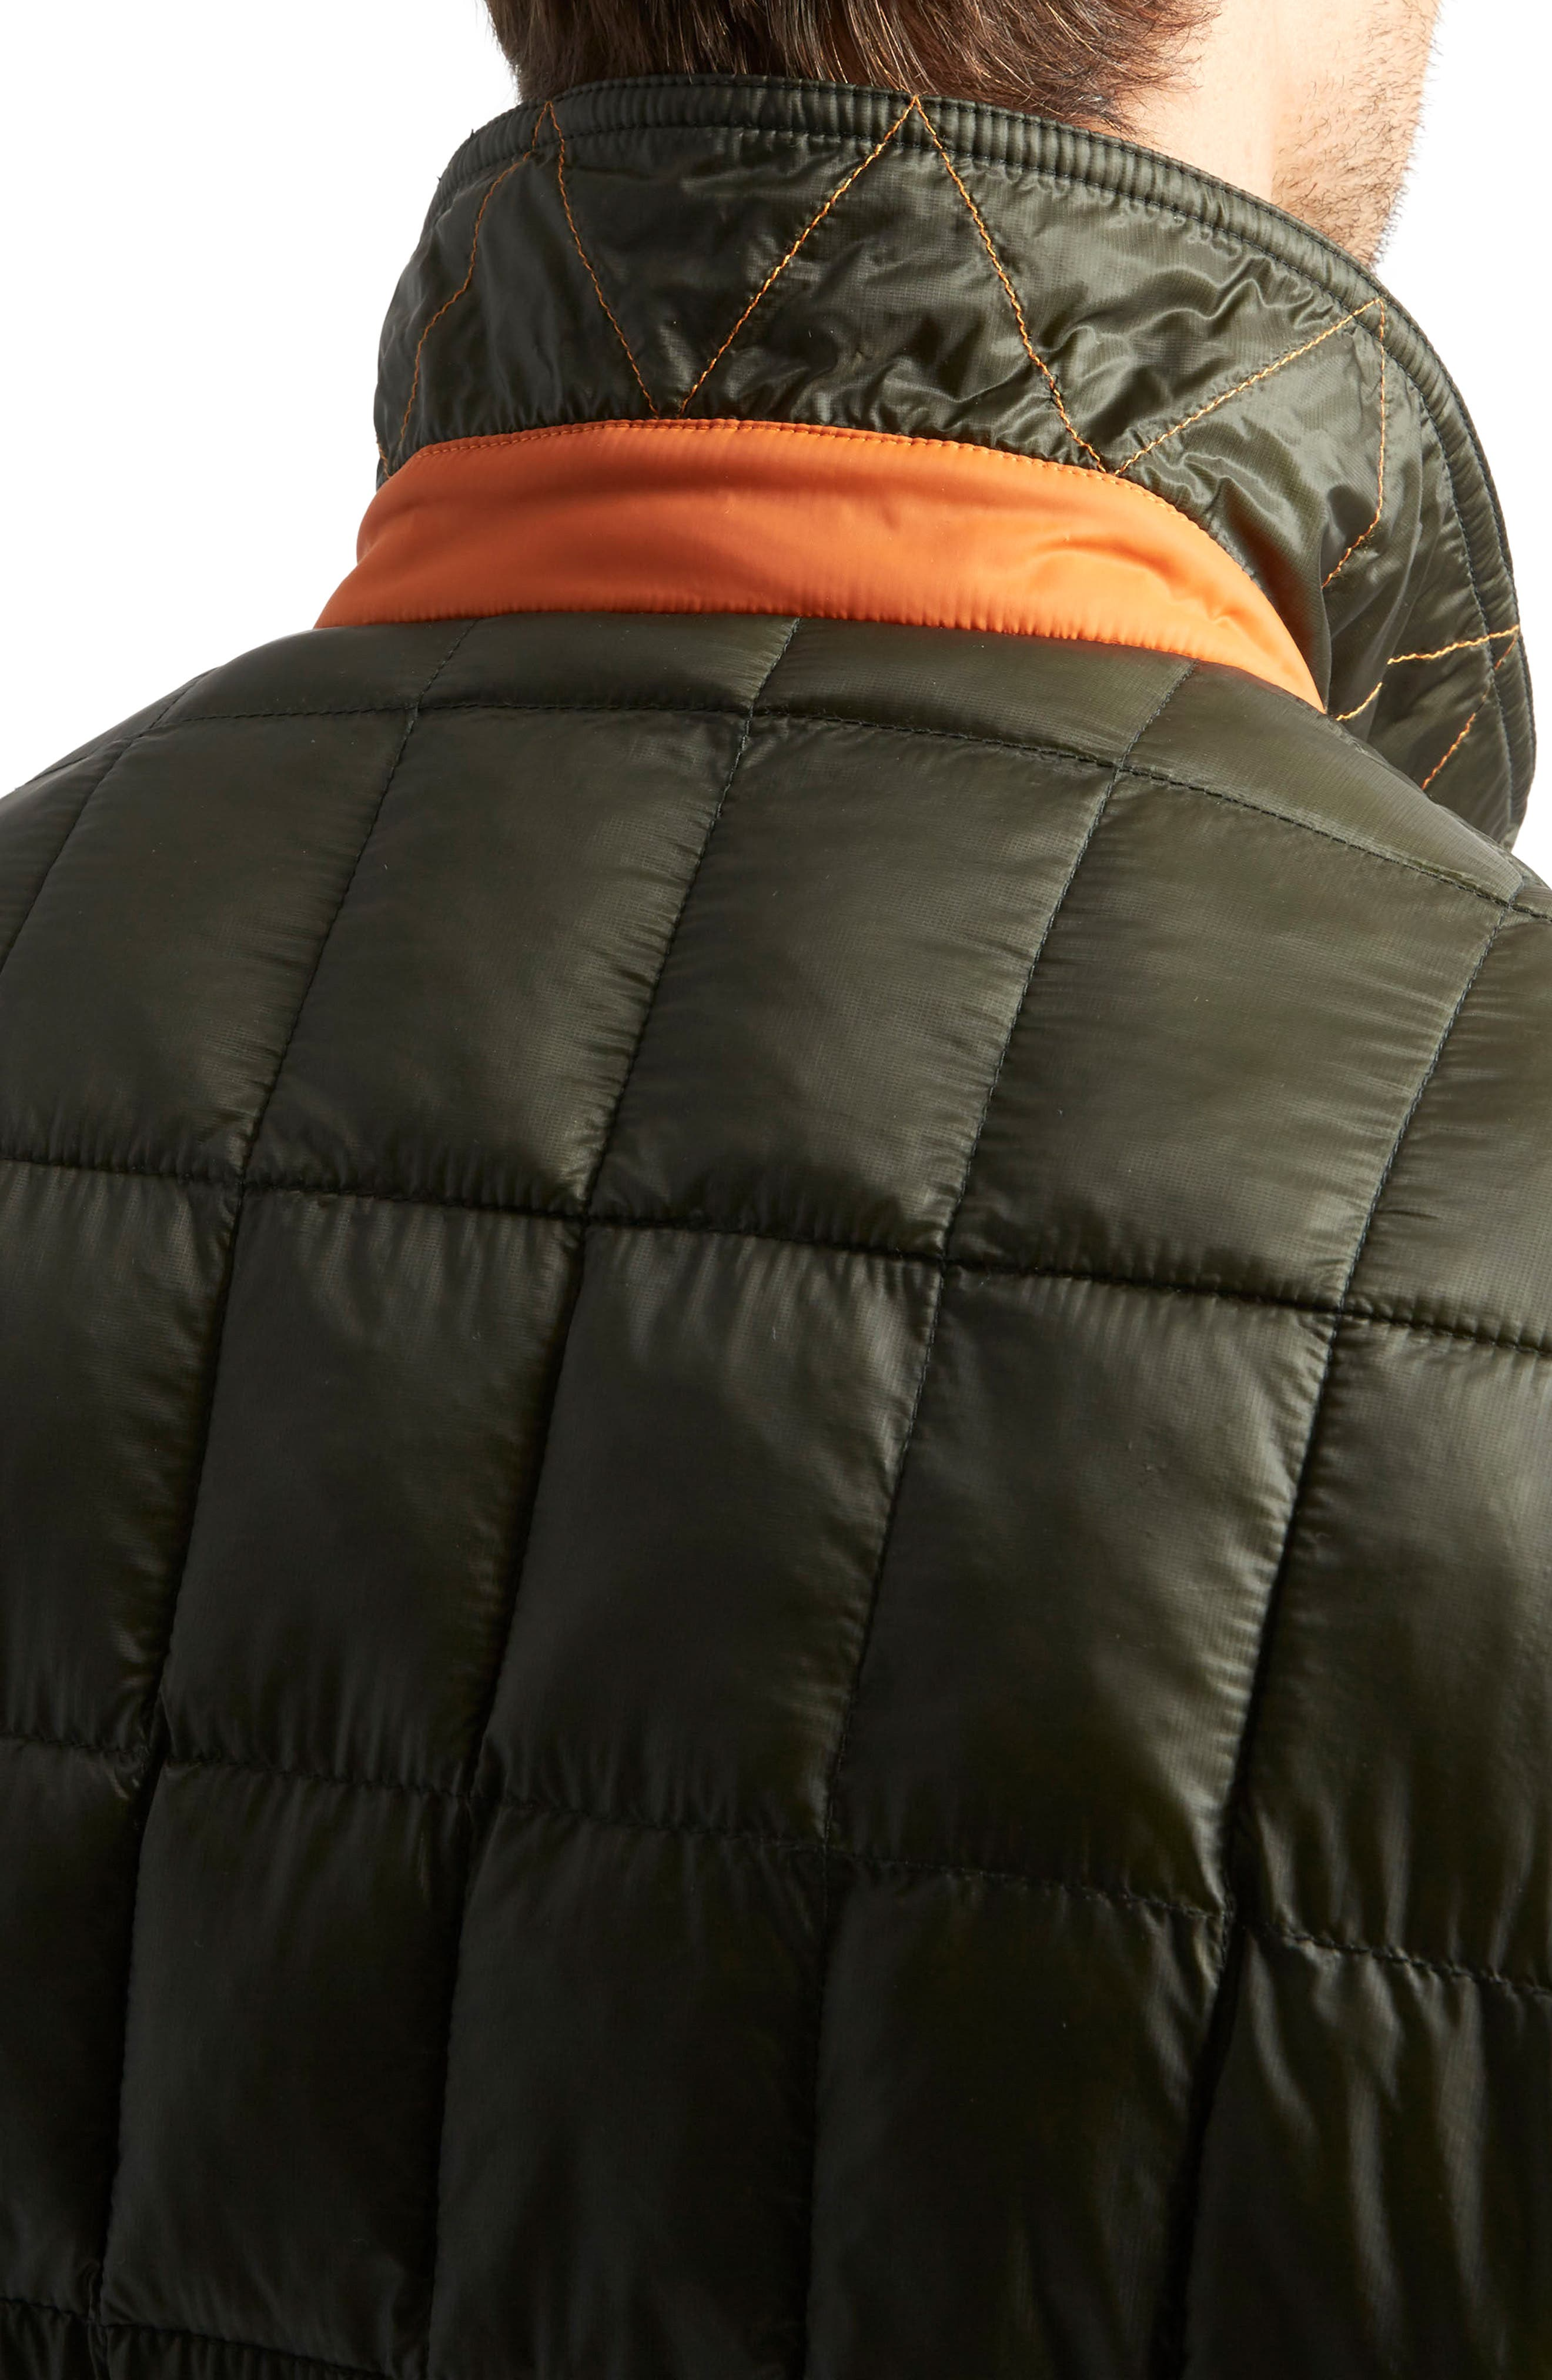 Butler Heat System Quilted Walking Jacket,                             Alternate thumbnail 3, color,                             340